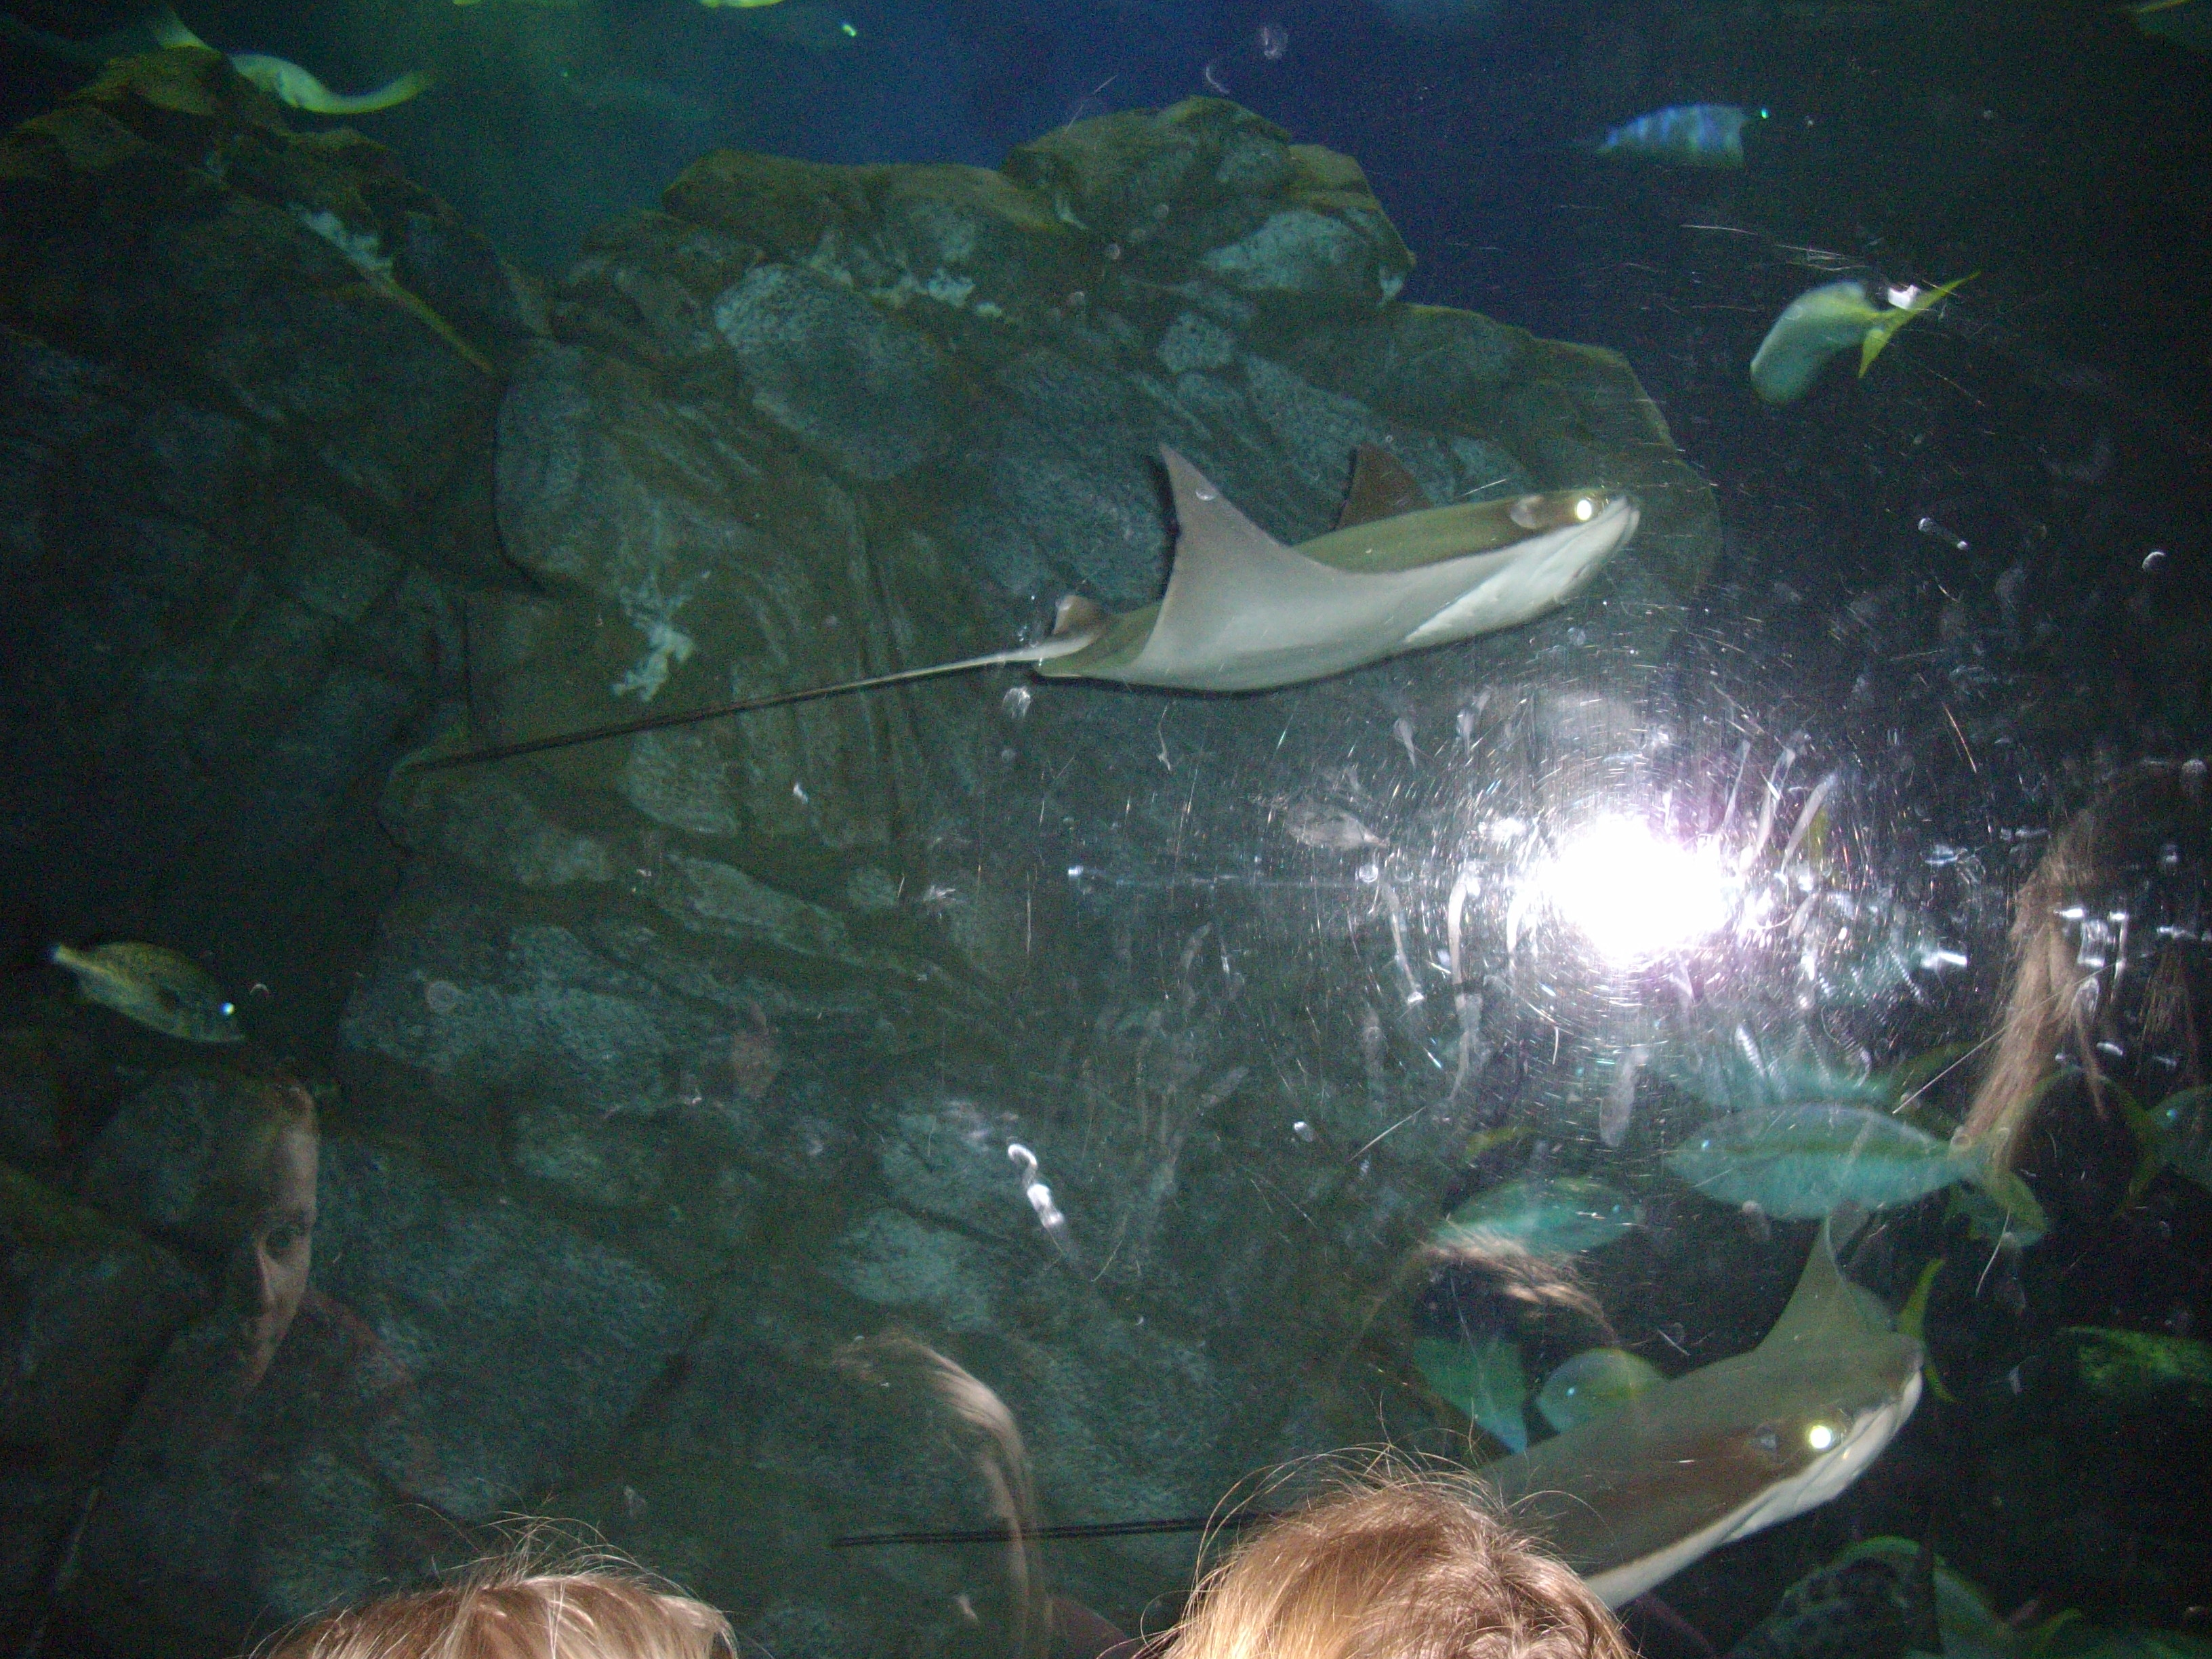 Ripley's Aquarium, Toronto, fish, aquarium, animal rights